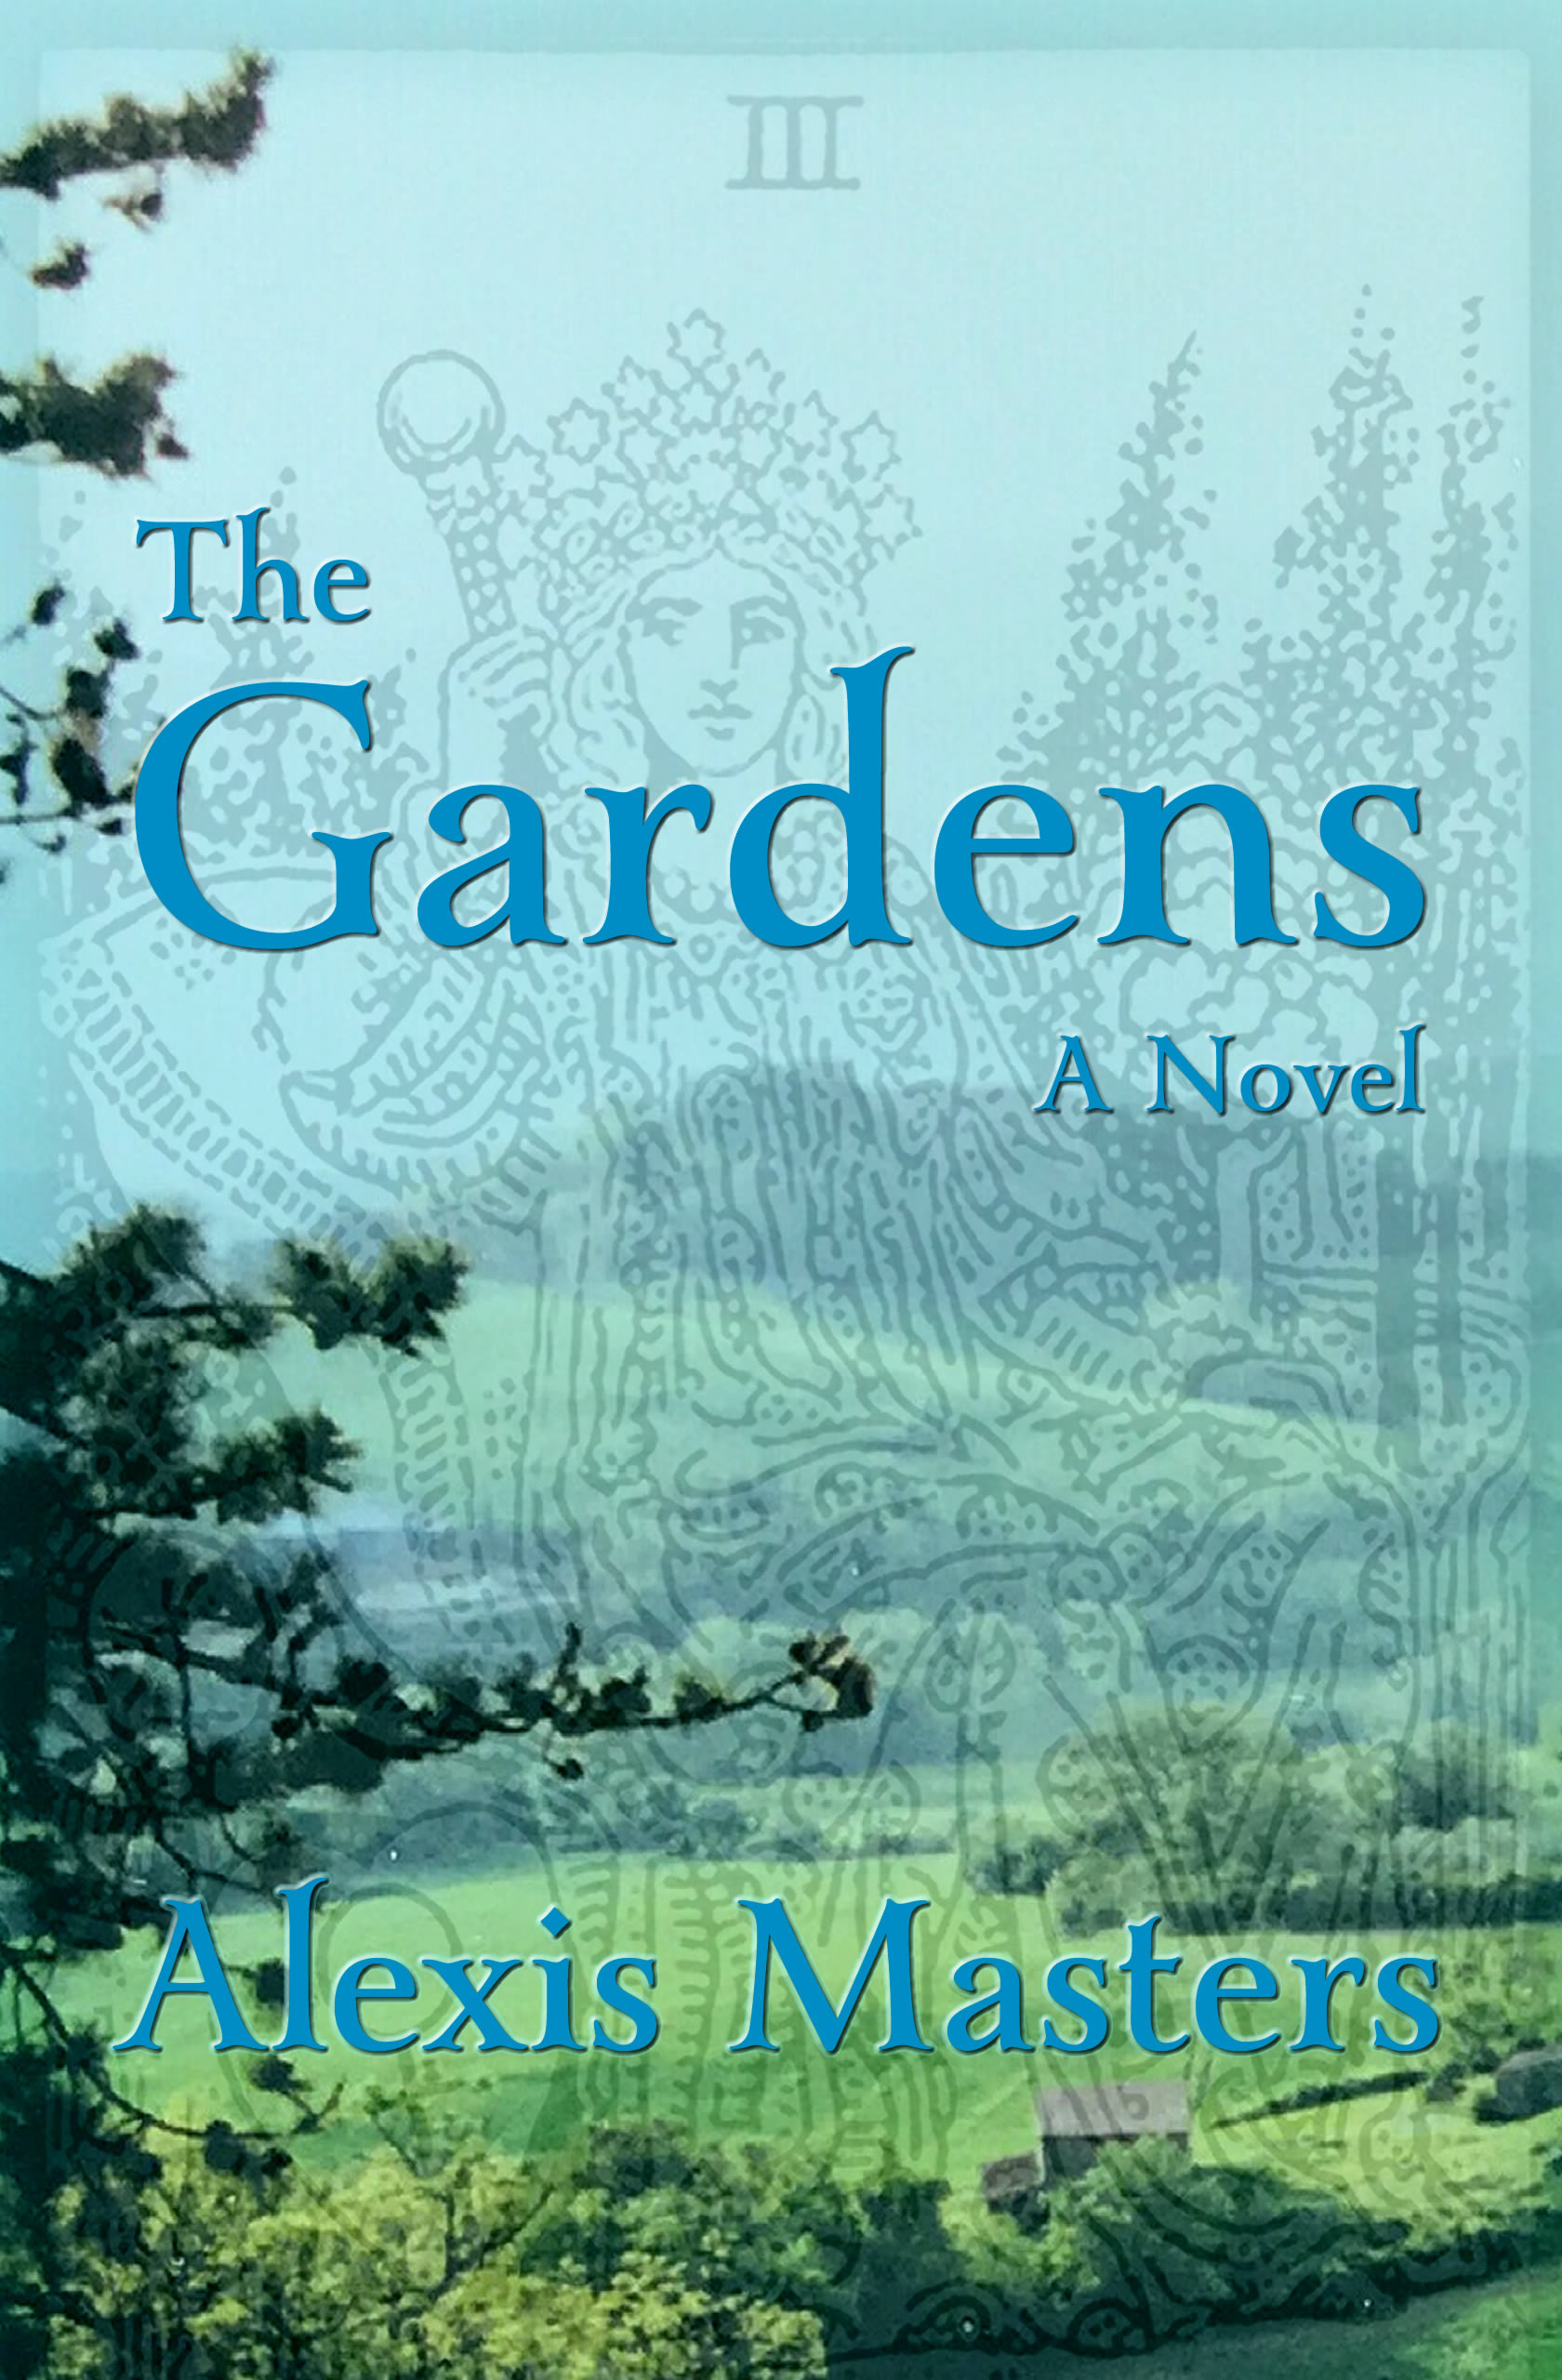 Cover image for The Gardens, A Novel by Alexis Masters